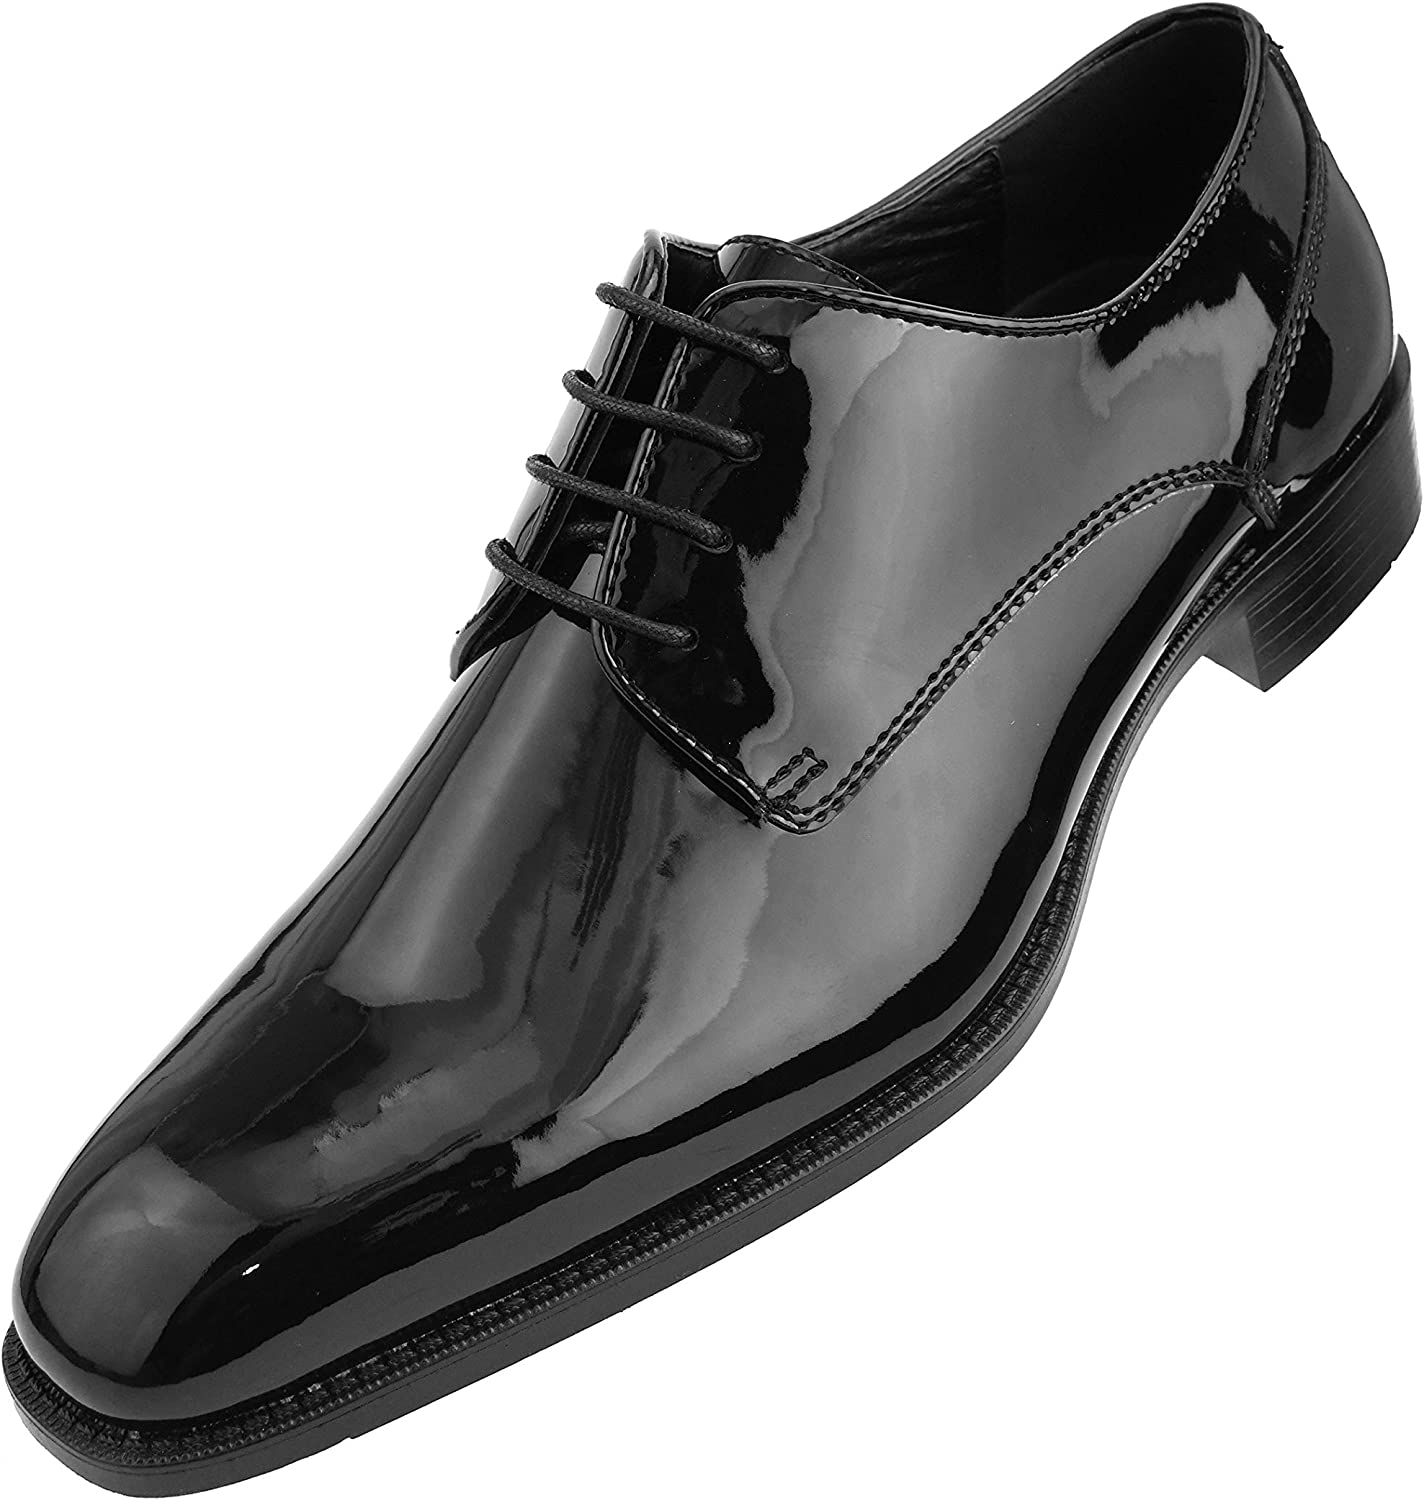 Amali Classiko, Mens Shoes - Mens Dress Shoes - Mens Oxford Shoes - Wedding  Shoes - Lace Up, Tuxedo Shoes for Men - Patent Man Made Leather